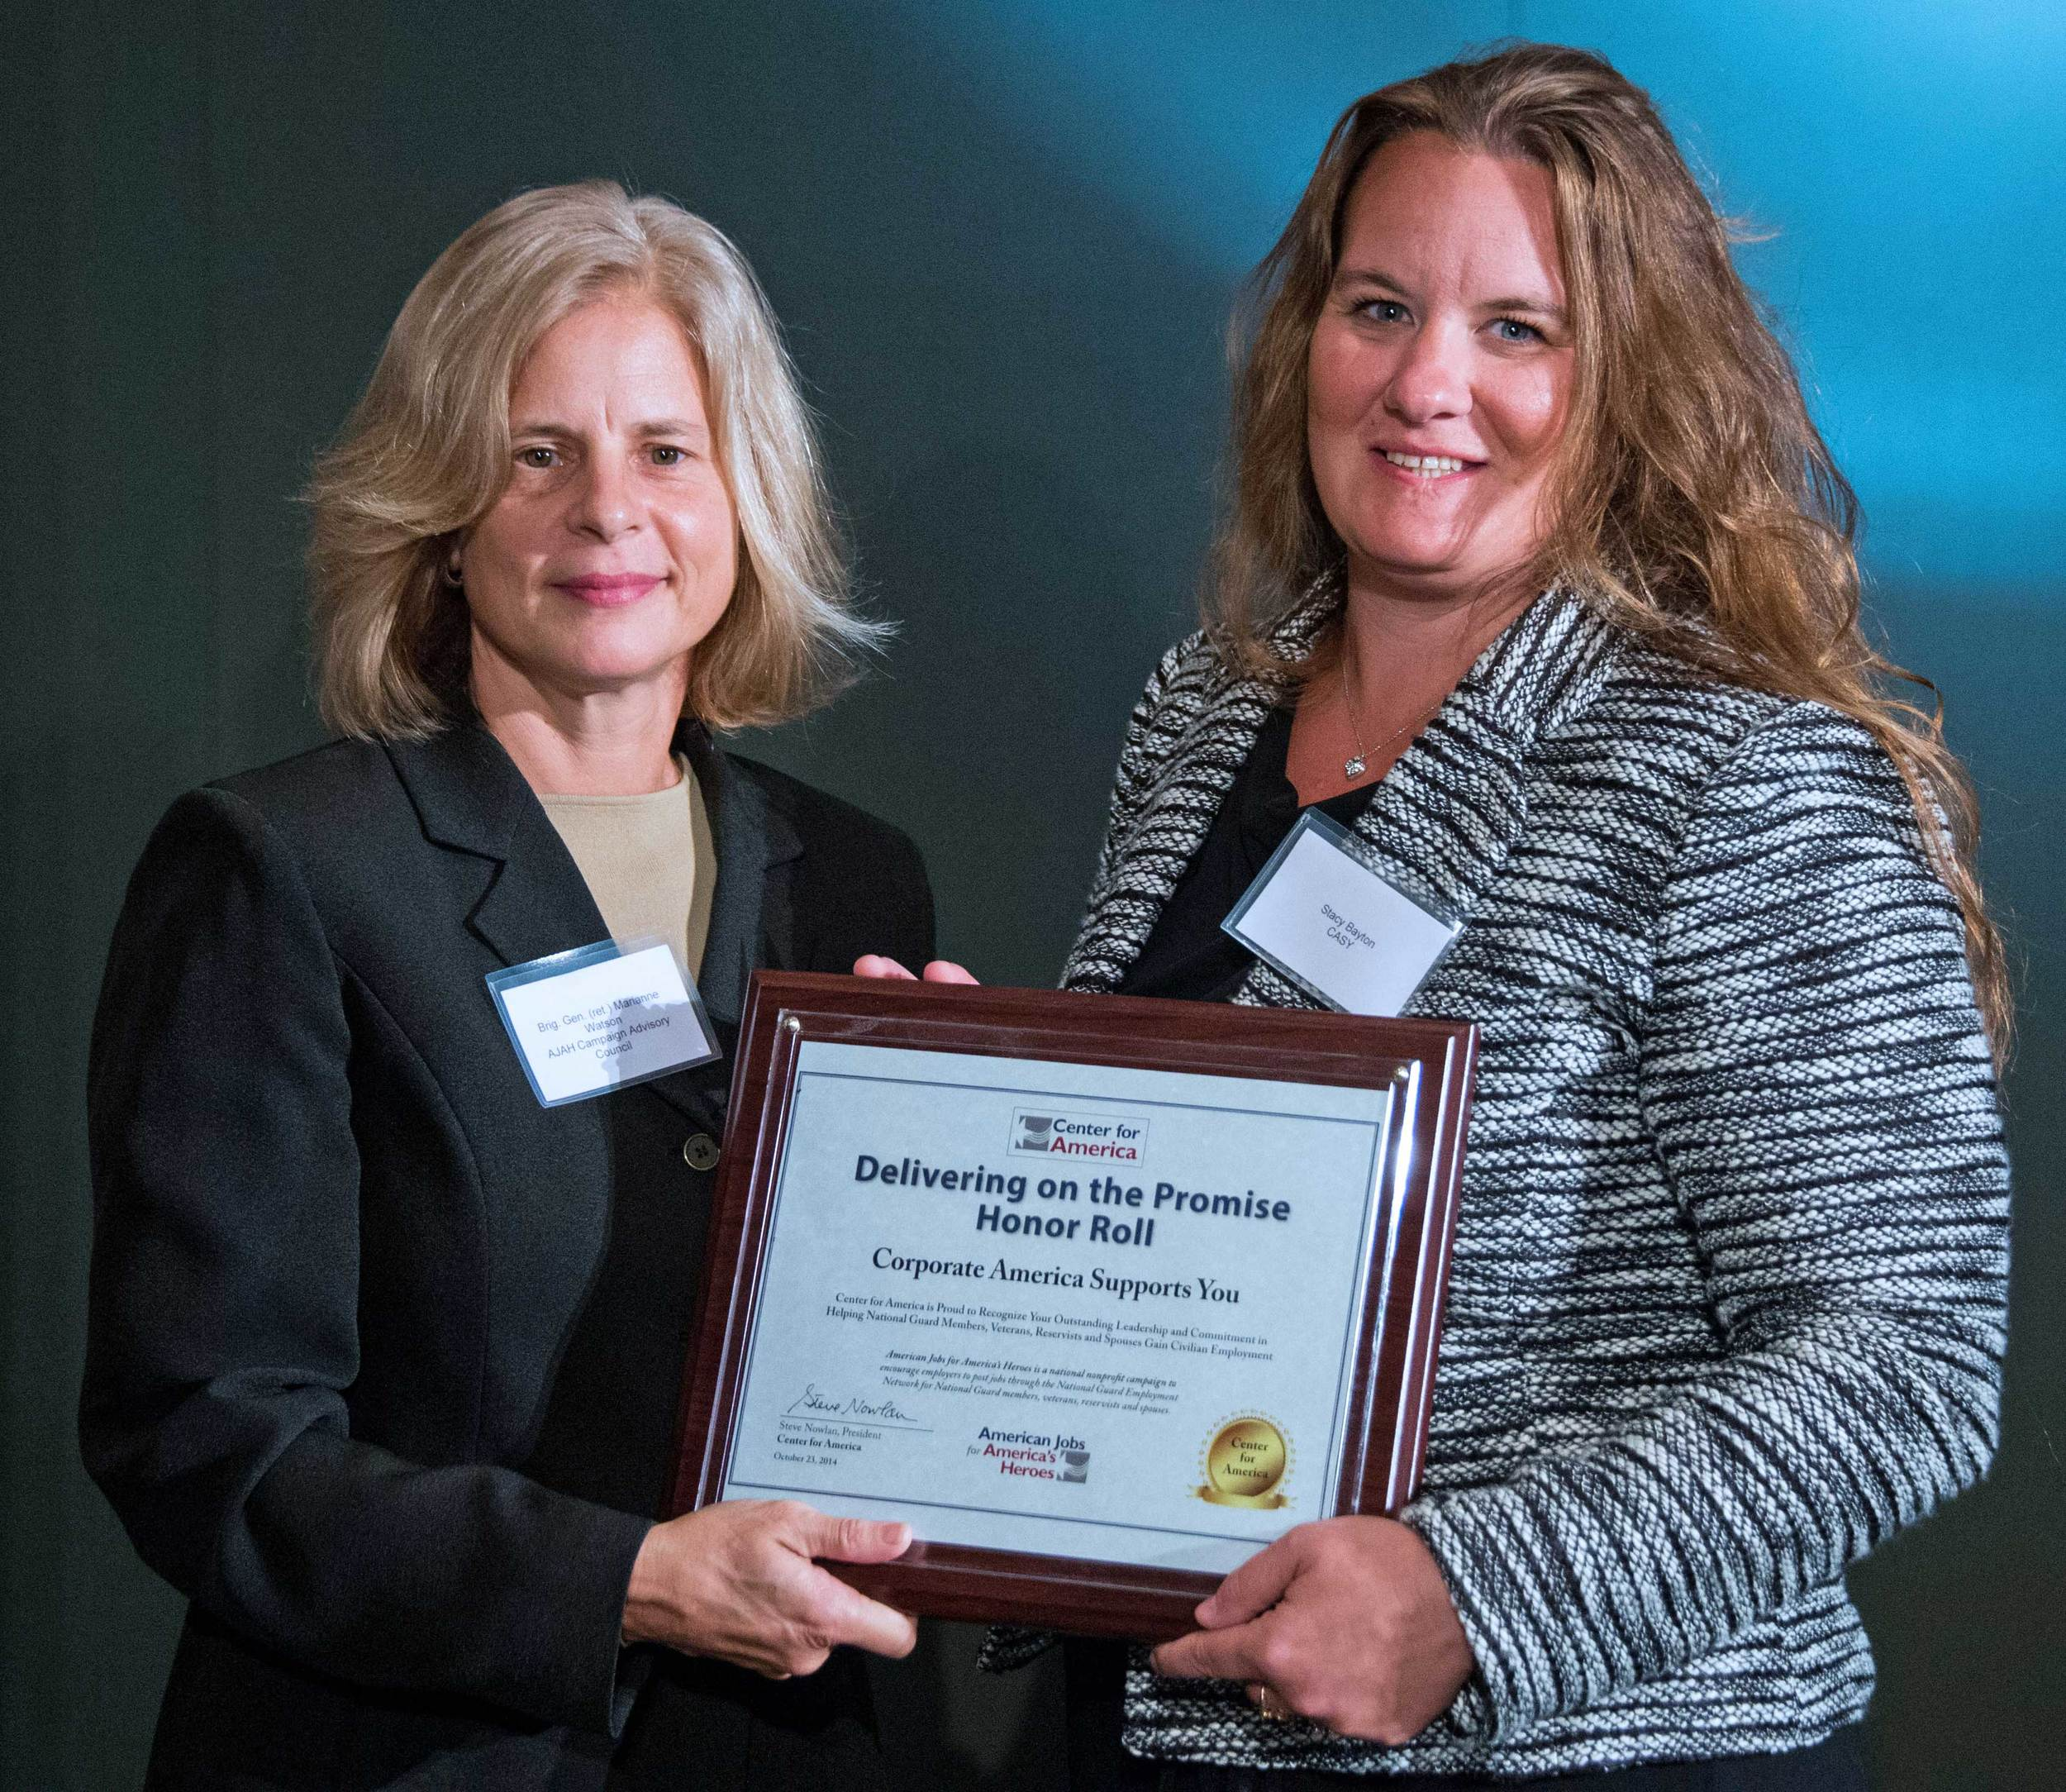 Brigadier General (ret) Marianne Watson presents the CFA Award to Stacy Bayton, Chief Operating Officer, Corporate America Supports You (CASY)